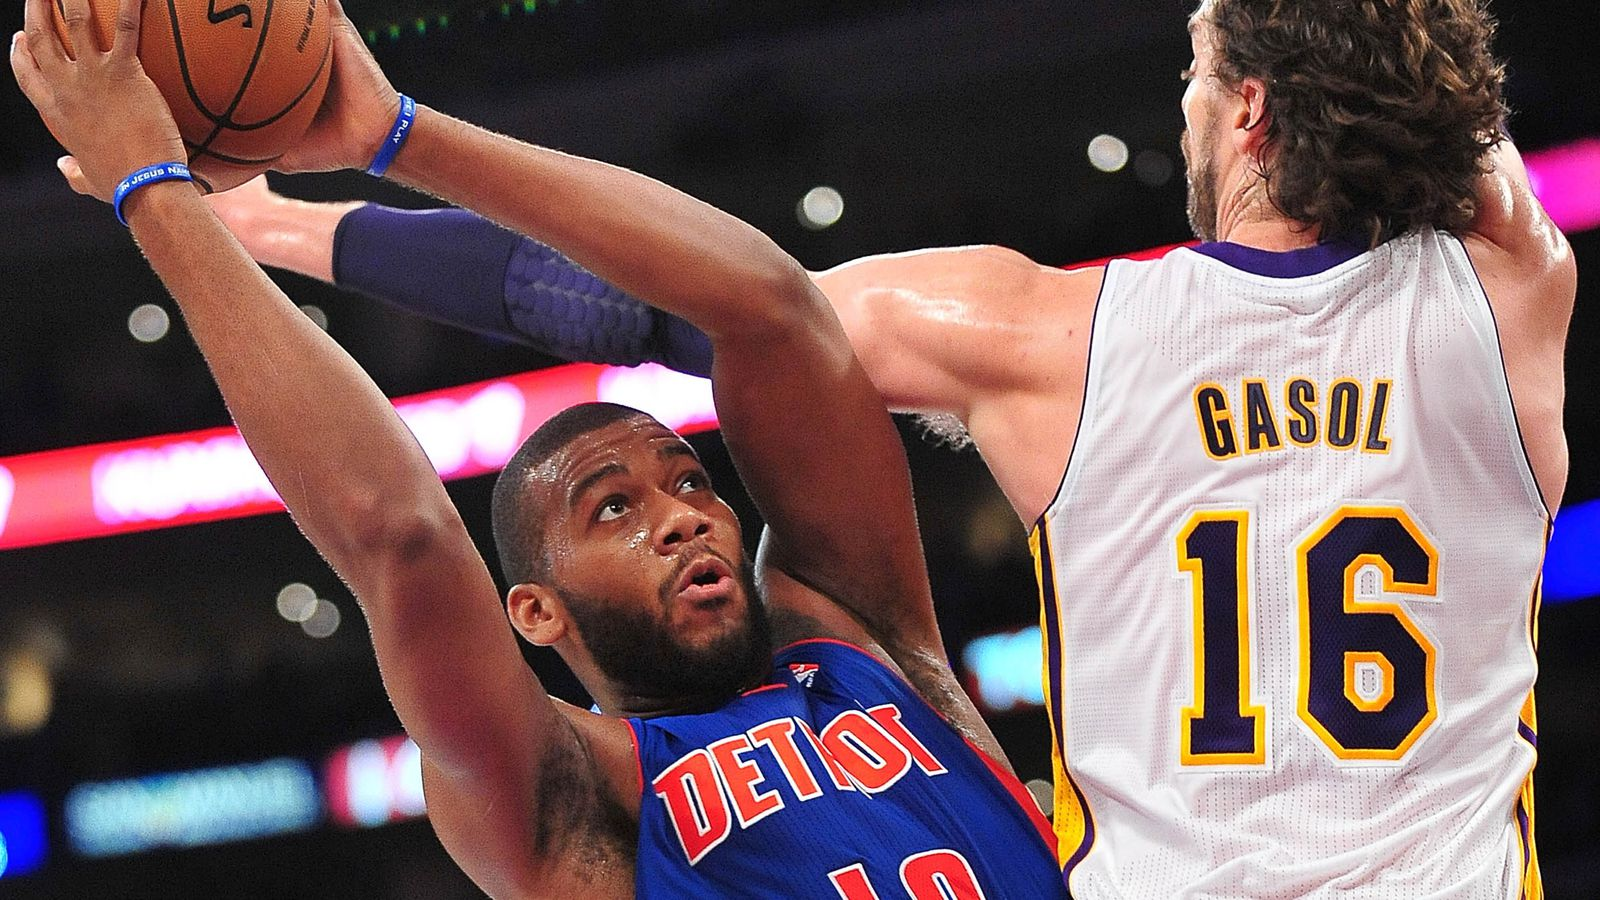 Pistons Vs Lakers: Pistons Vs. Lakers: Game Time, TV Schedule, Odds And More